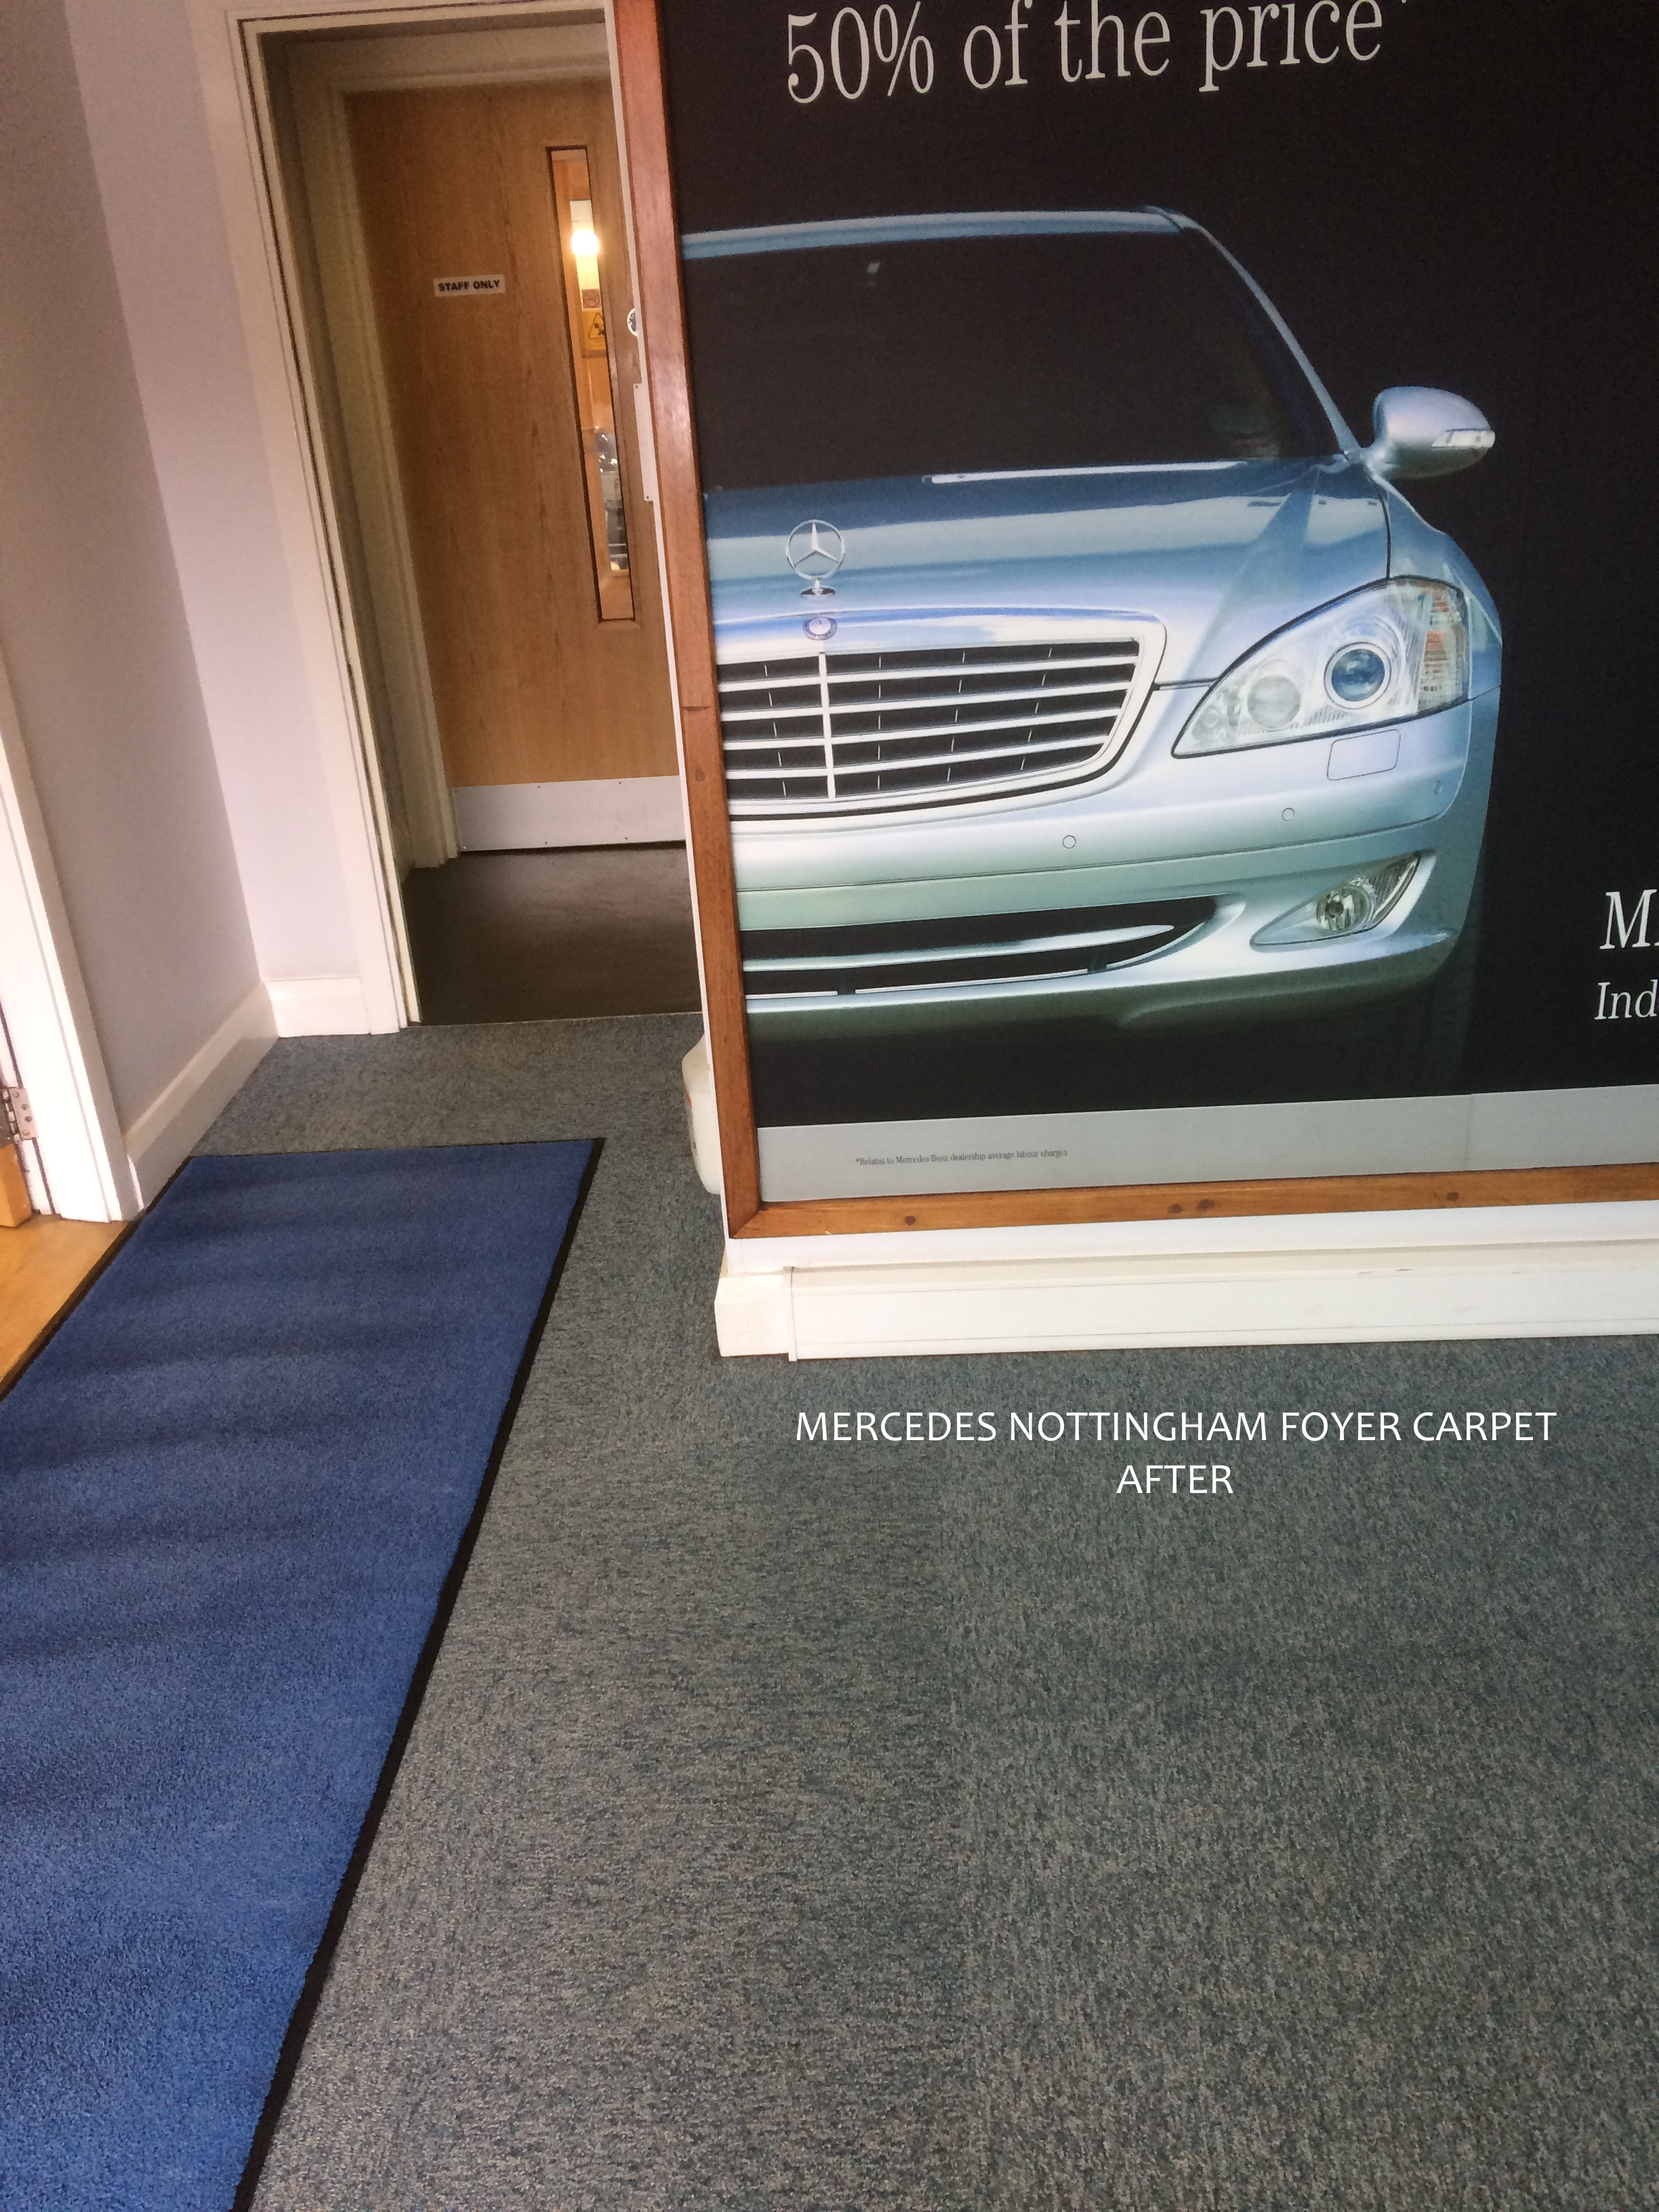 MERCEDS BENZ FOYER AFTER